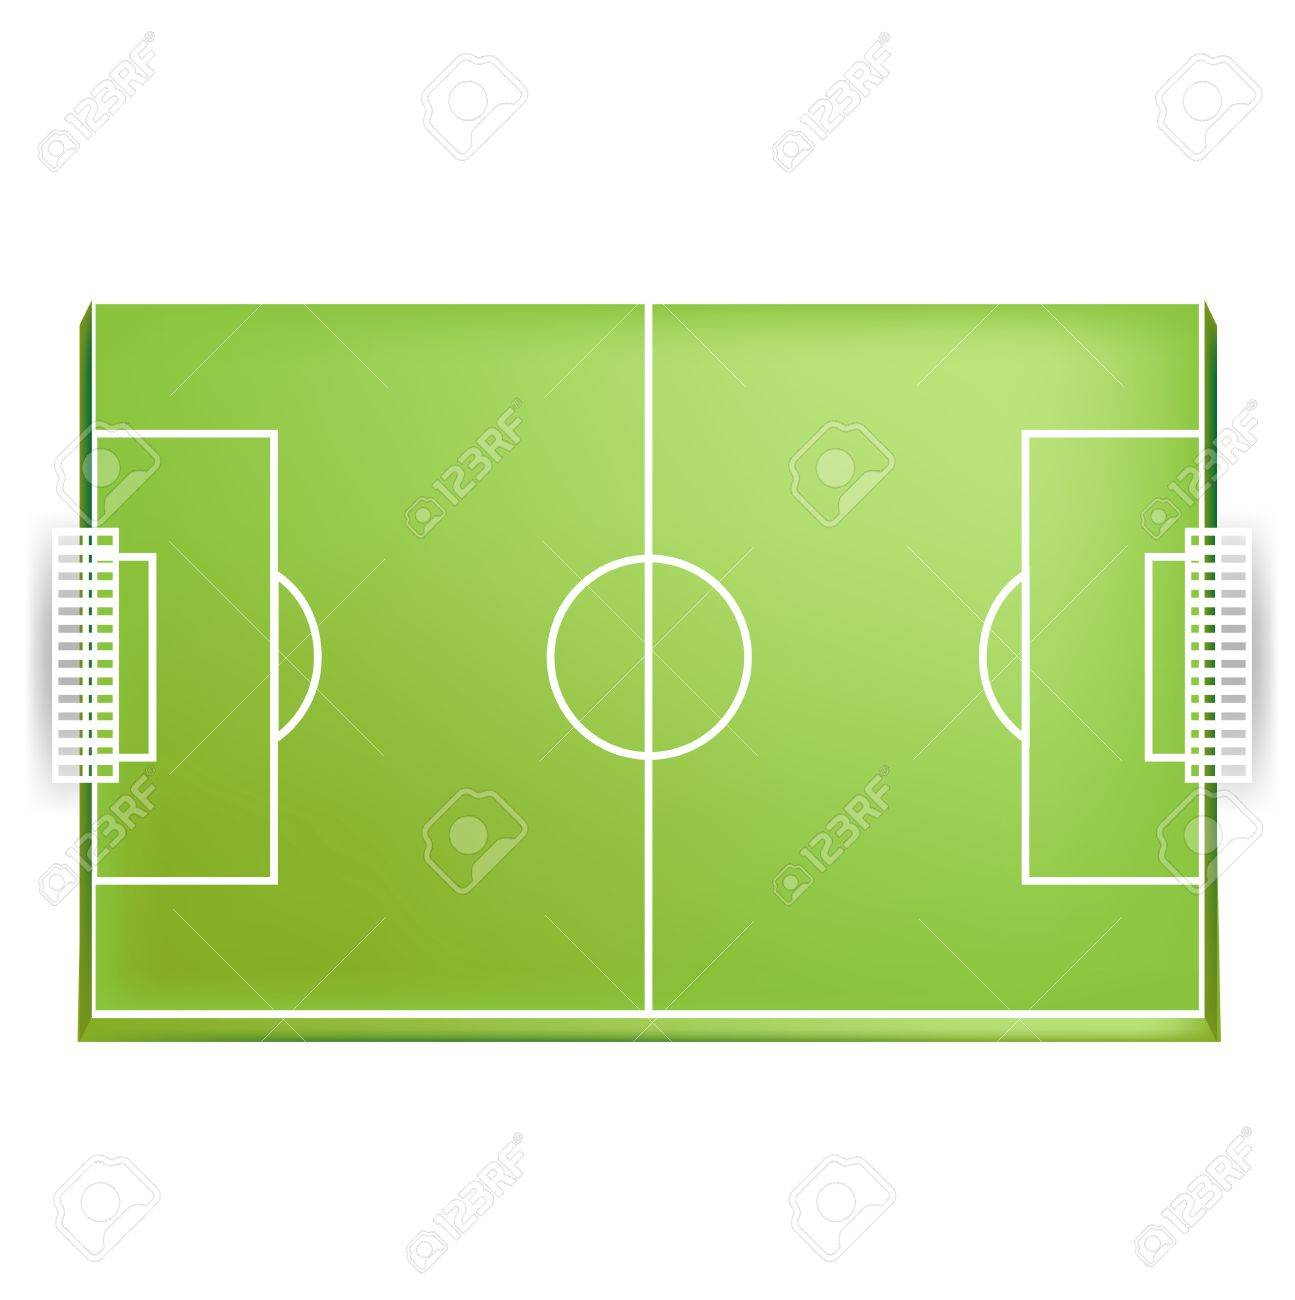 1295x1300 Soccer Field Or Football Field From Above View Isolated Royalty